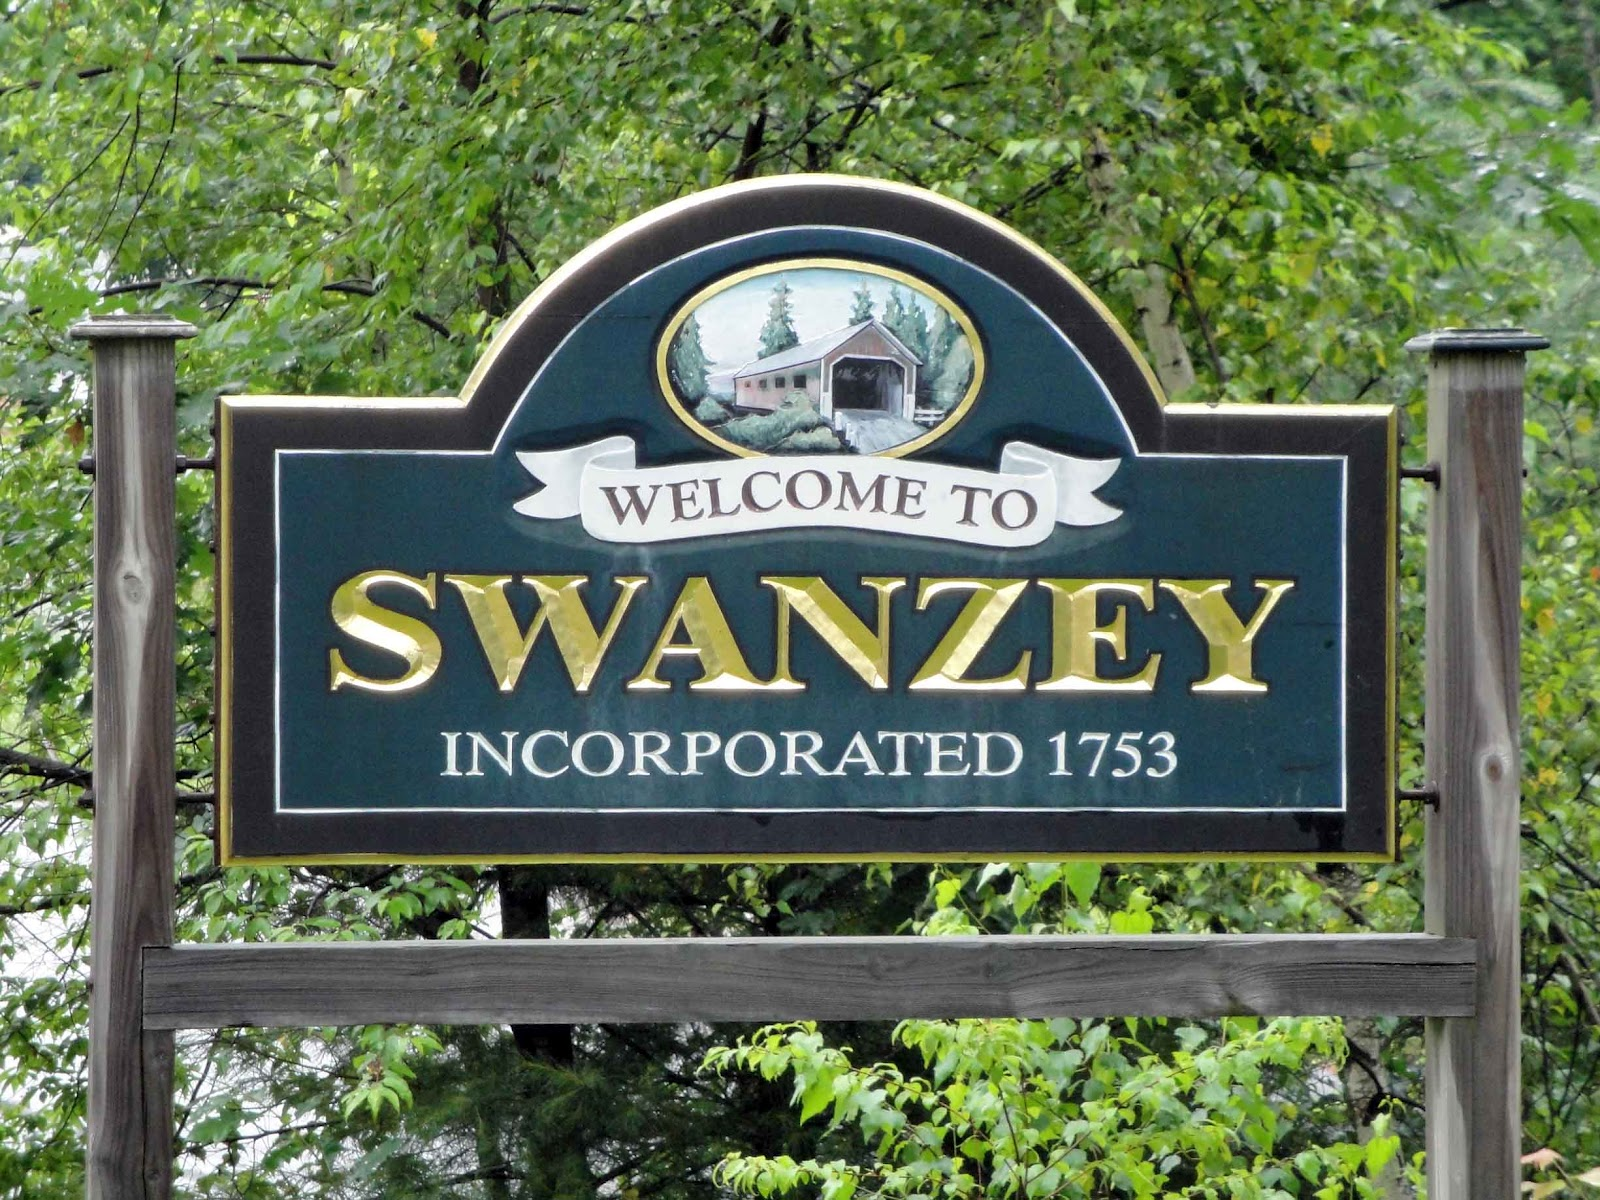 swanzey dating Find dates on zoosk west swanzey singles interested in dating and making new friends use zoosk date smarter date online with zoosk.